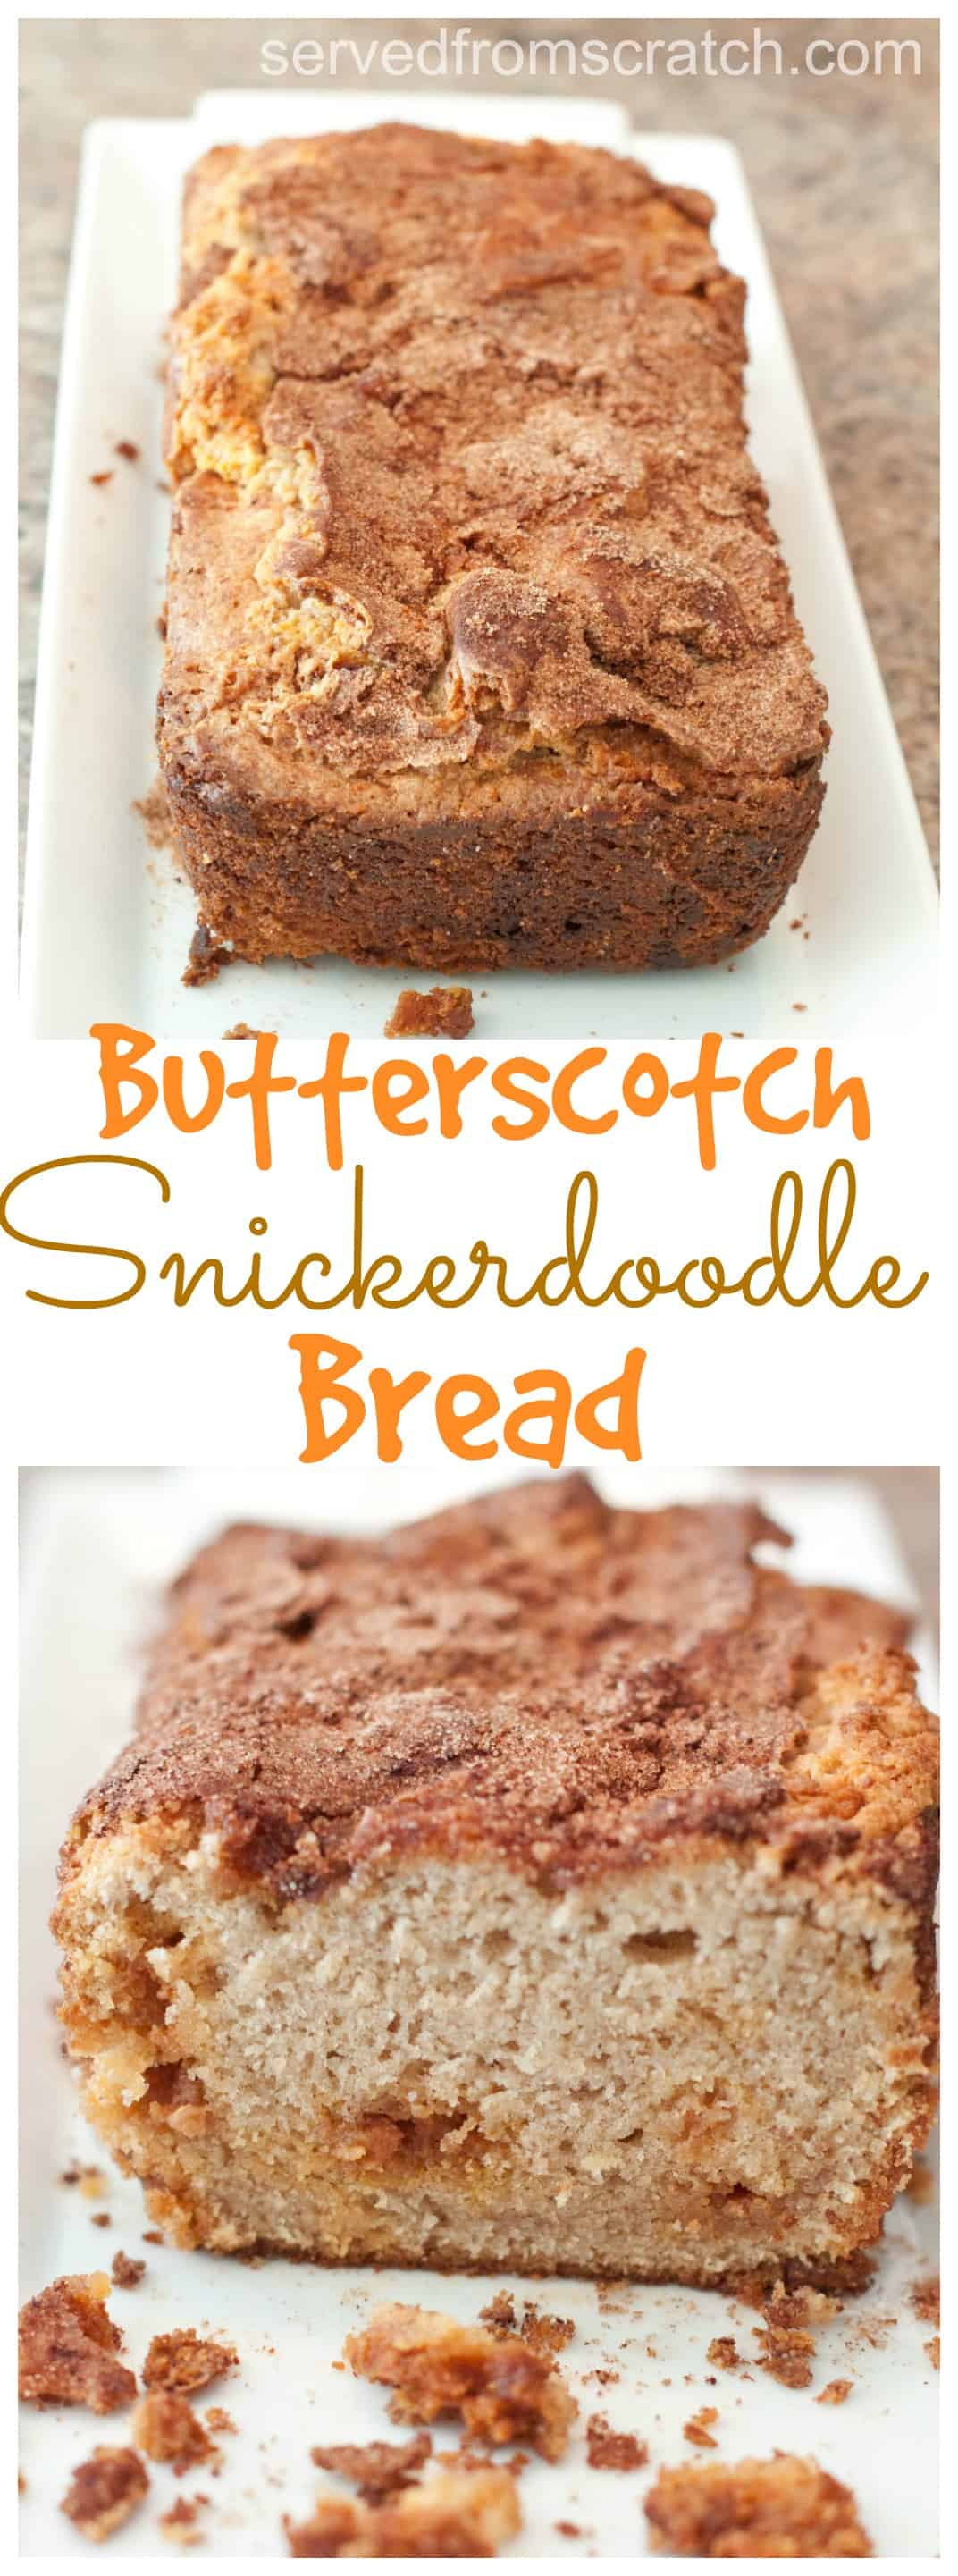 Your favorite cinnamon cookie baked into a delicious sweet loaf with butterscotch chips!